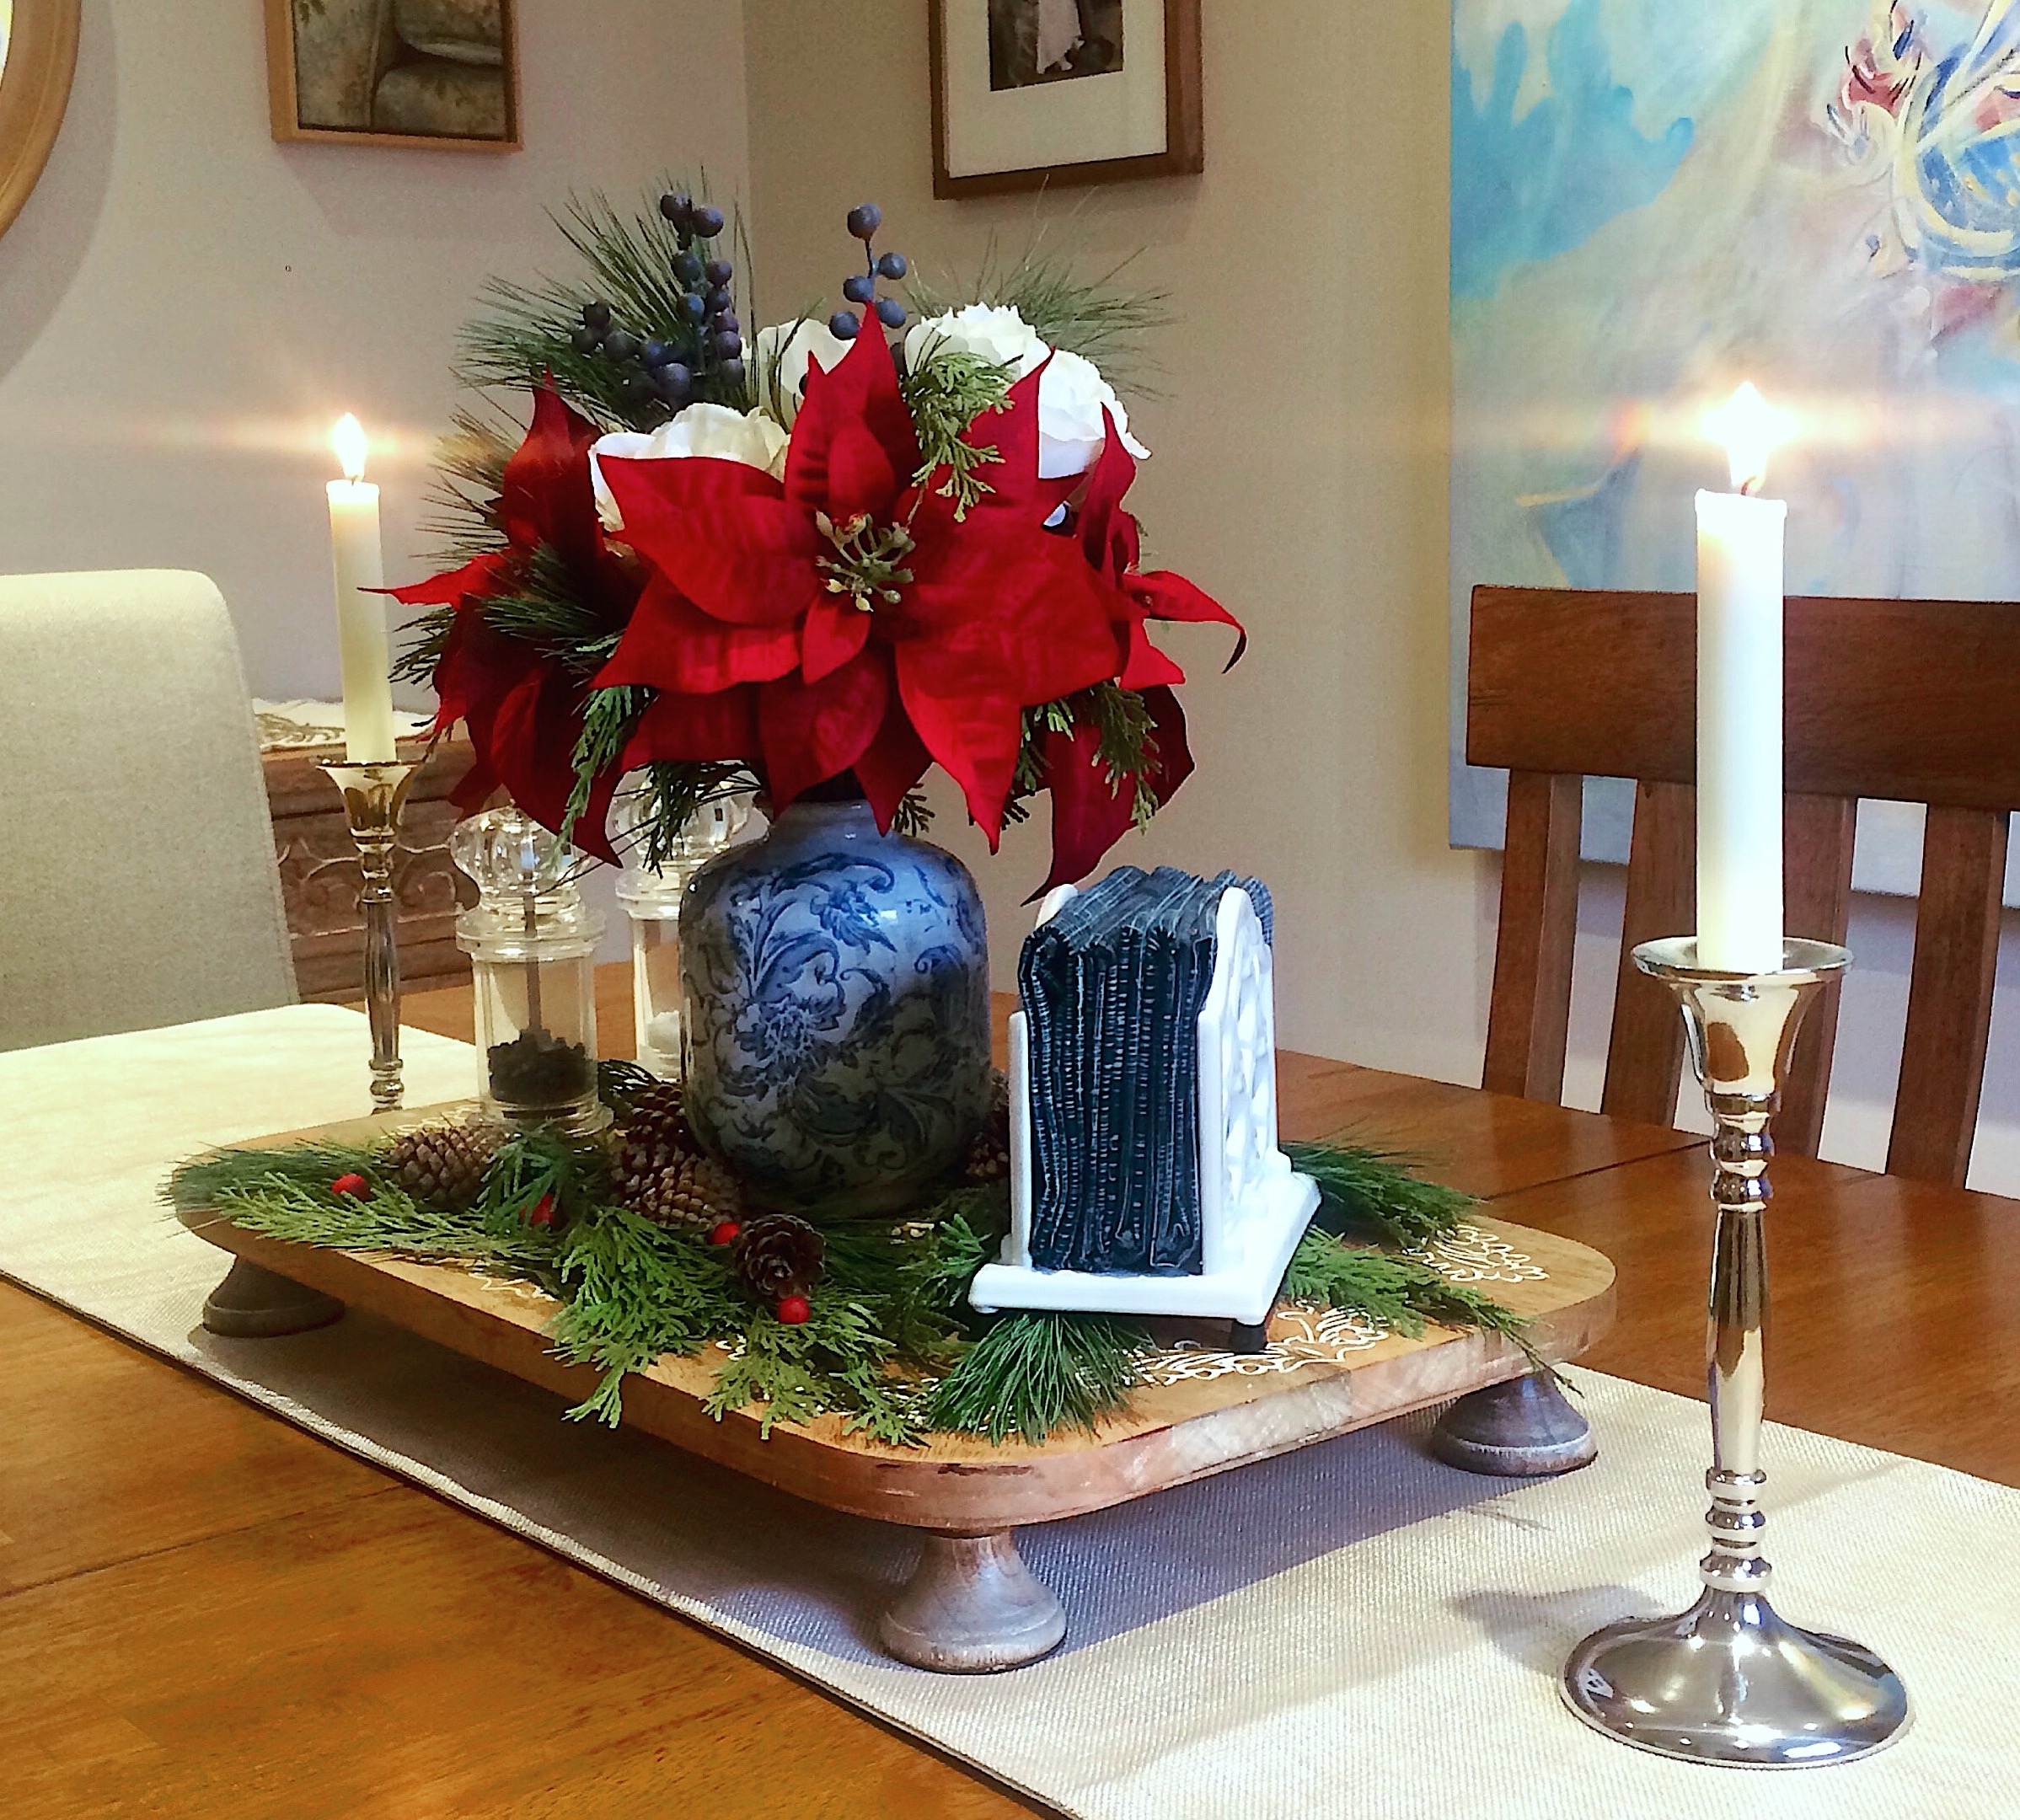 Winter Tablescape.  An arrangement of faux poinsettias and white roses along with scattered evergreen branches, pine cones, and red berries transforms this vignette into a festive holiday centerpiece.